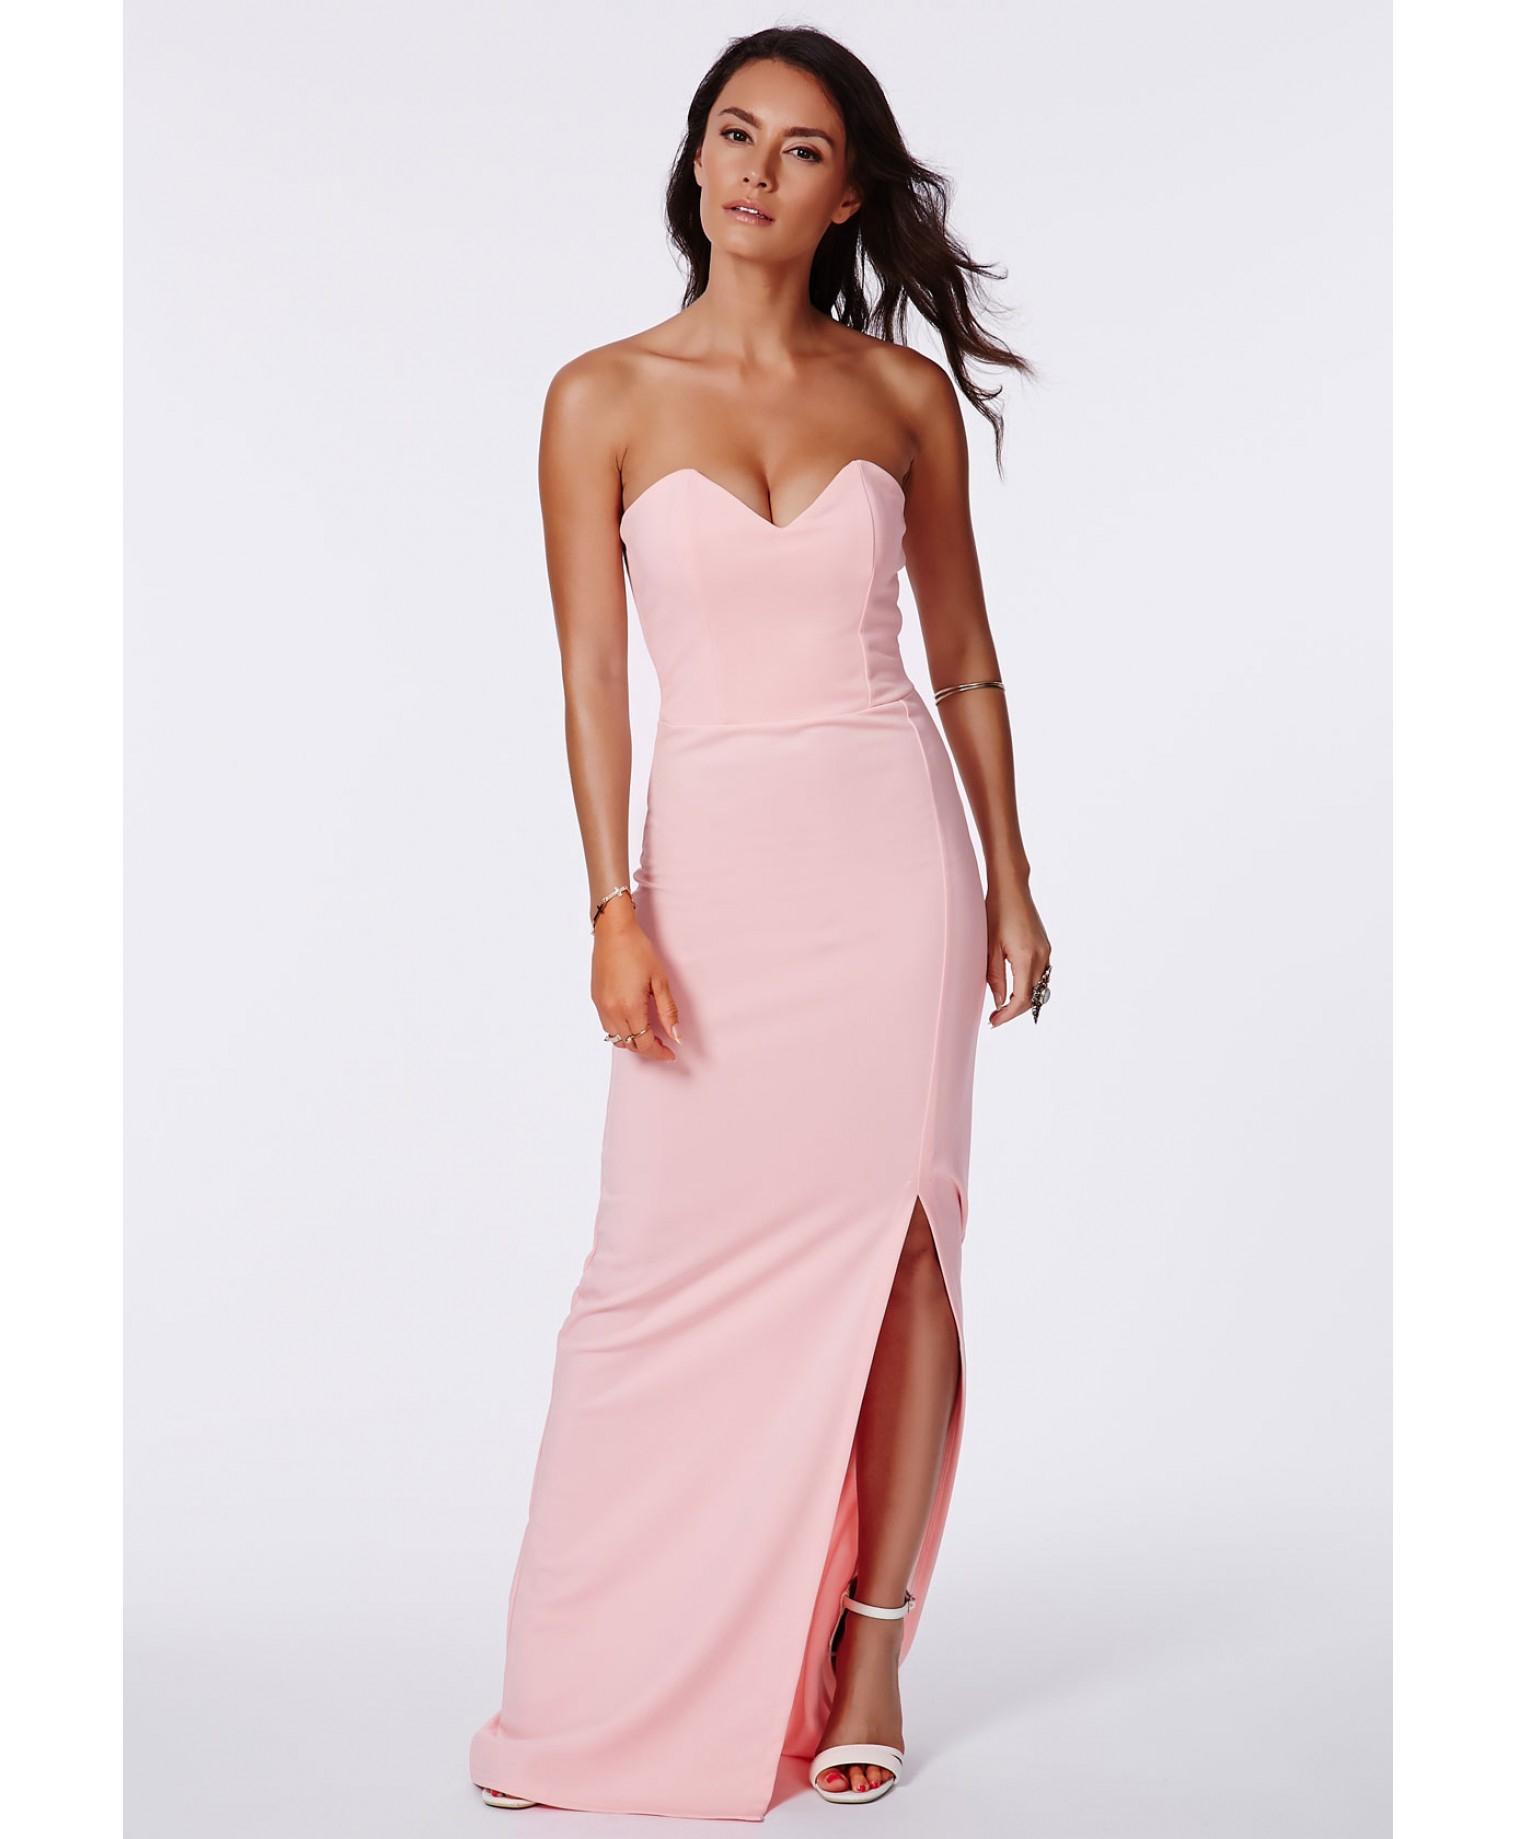 Shop boohoo's range of womens and mens clothing for the latest fashion trends you can totally do your thing in, with s of new styles landing every day!